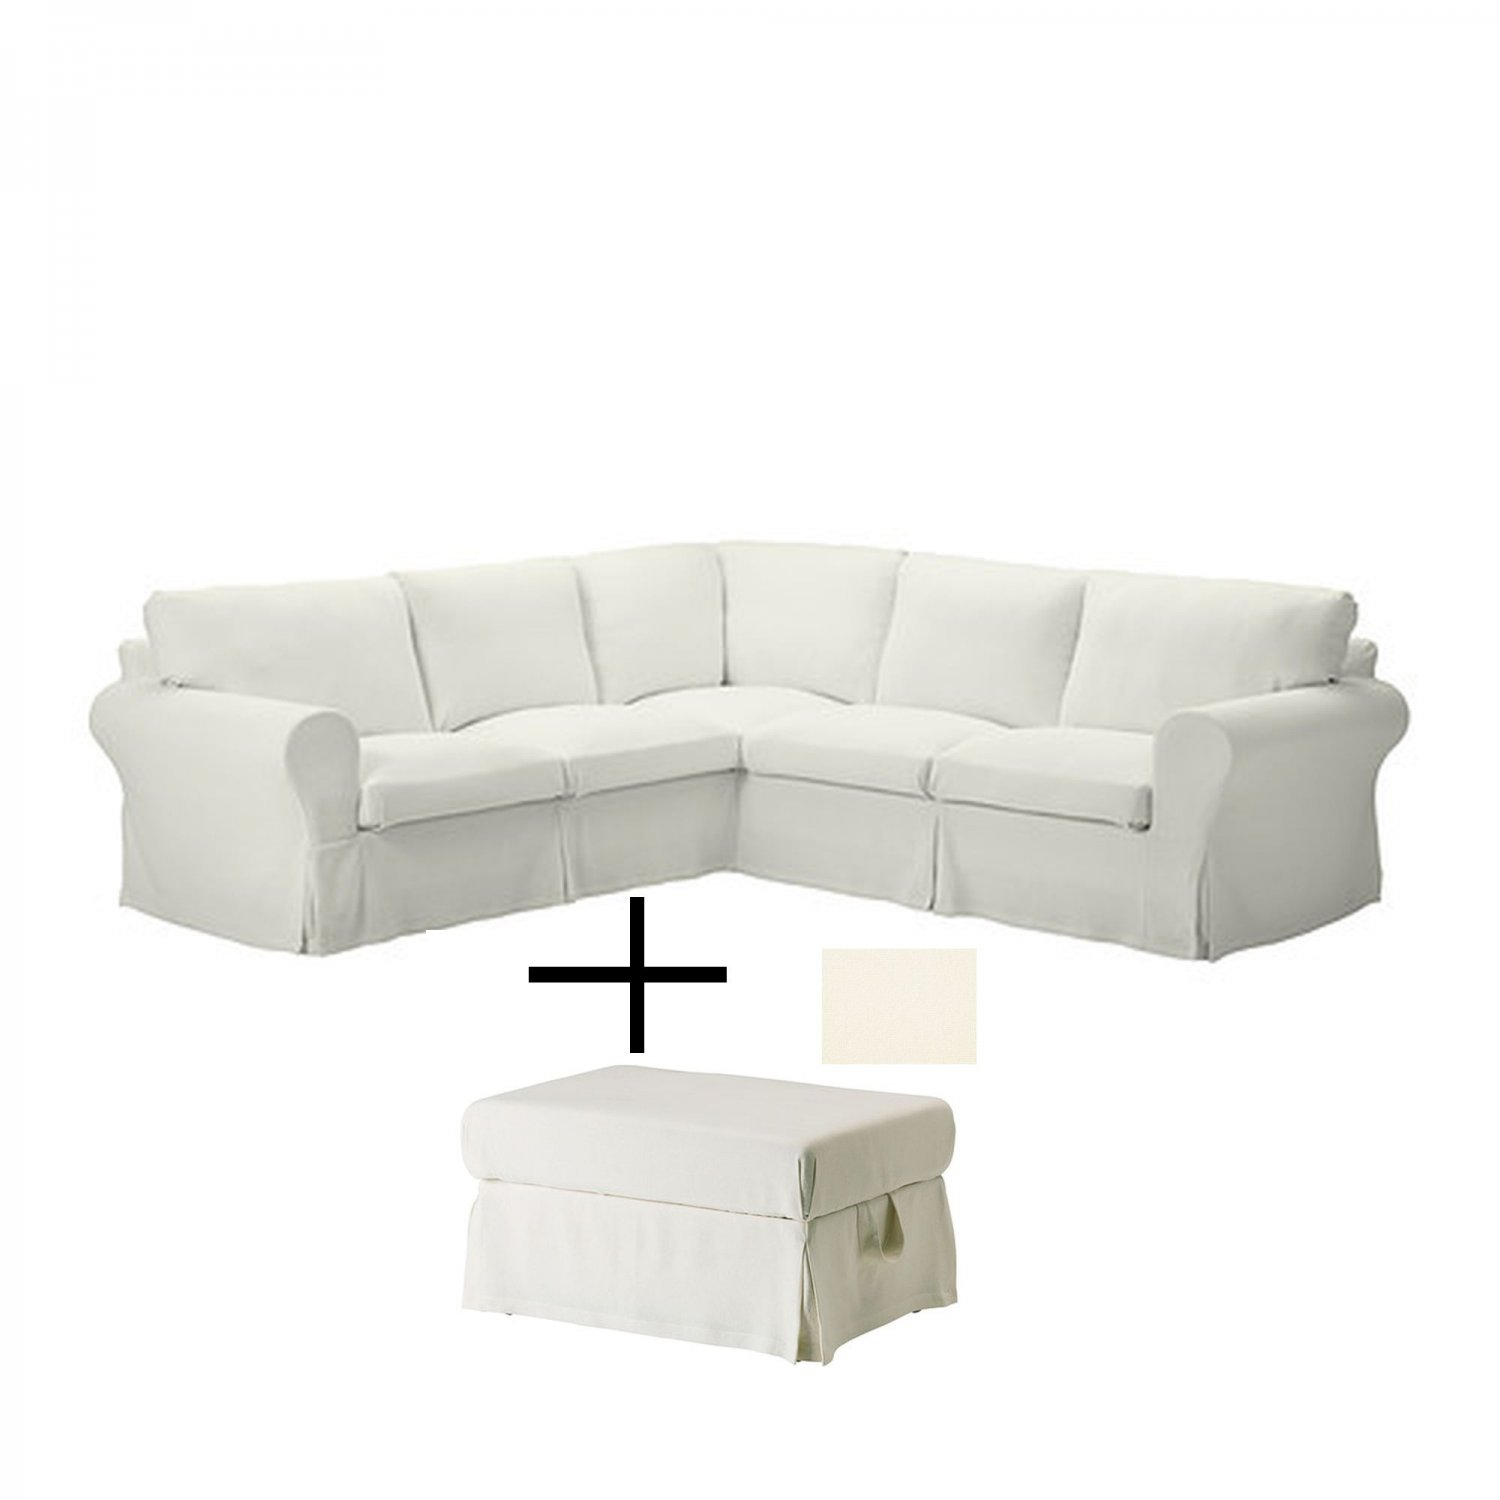 off white slipcover sofa catnapper reclining warranty ikea ektorp corner and footstool slipcovers stenasa